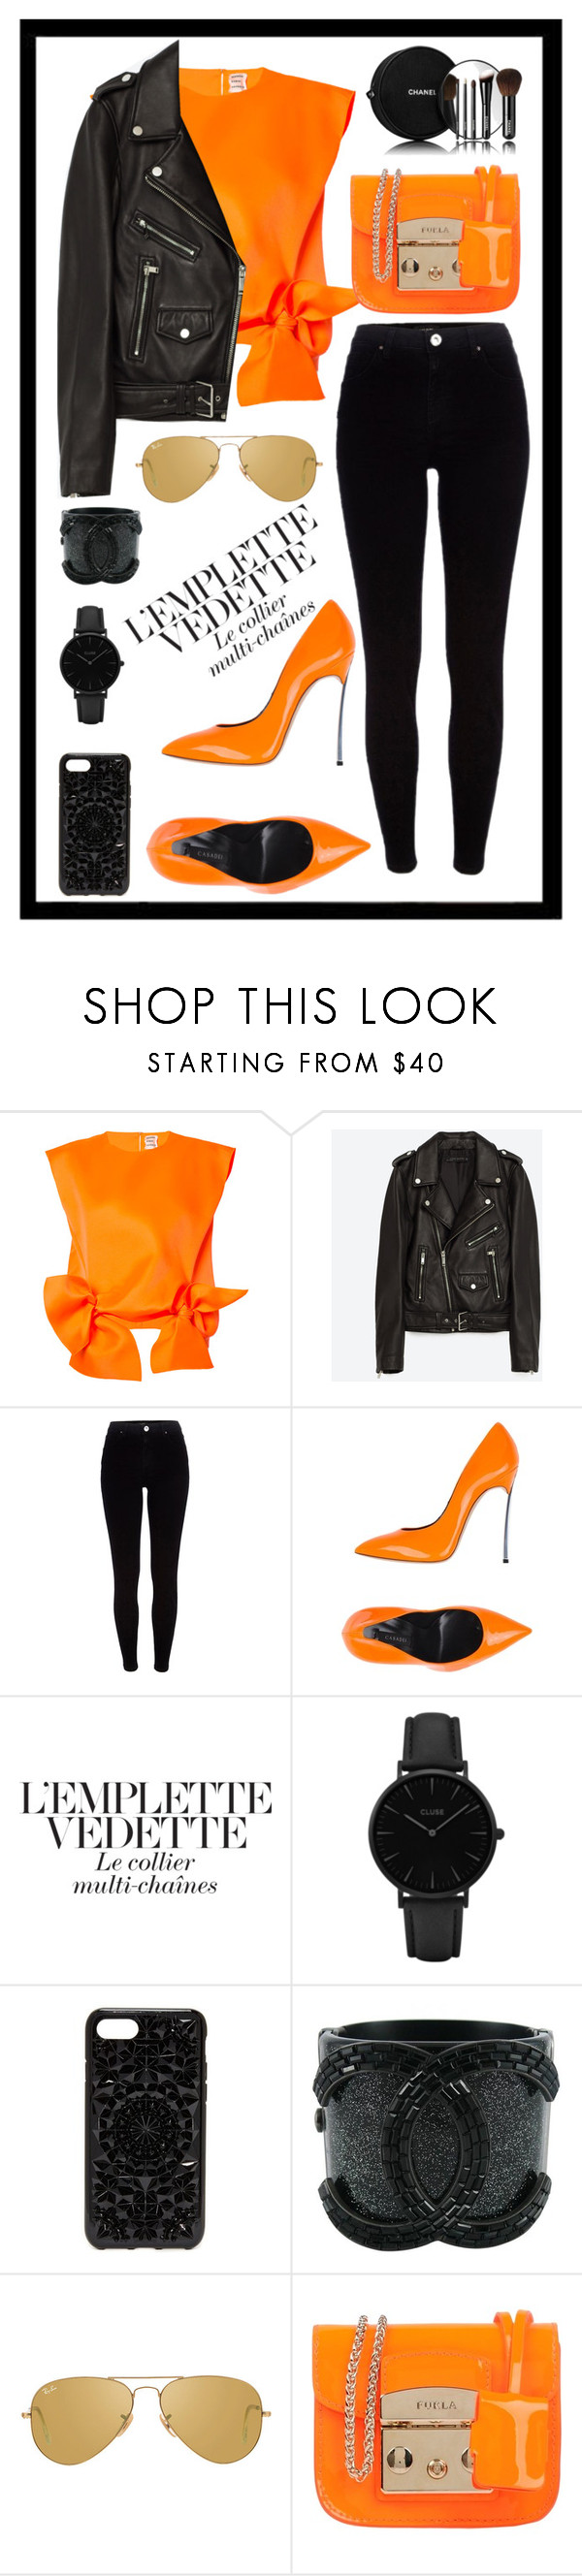 """""""Untitled #577"""" by rockinstyles ❤ liked on Polyvore featuring Maison Rabih Kayrouz, Jakke, River Island, Casadei, CLUSE, Felony Case, Chanel, Ray-Ban and Furla"""